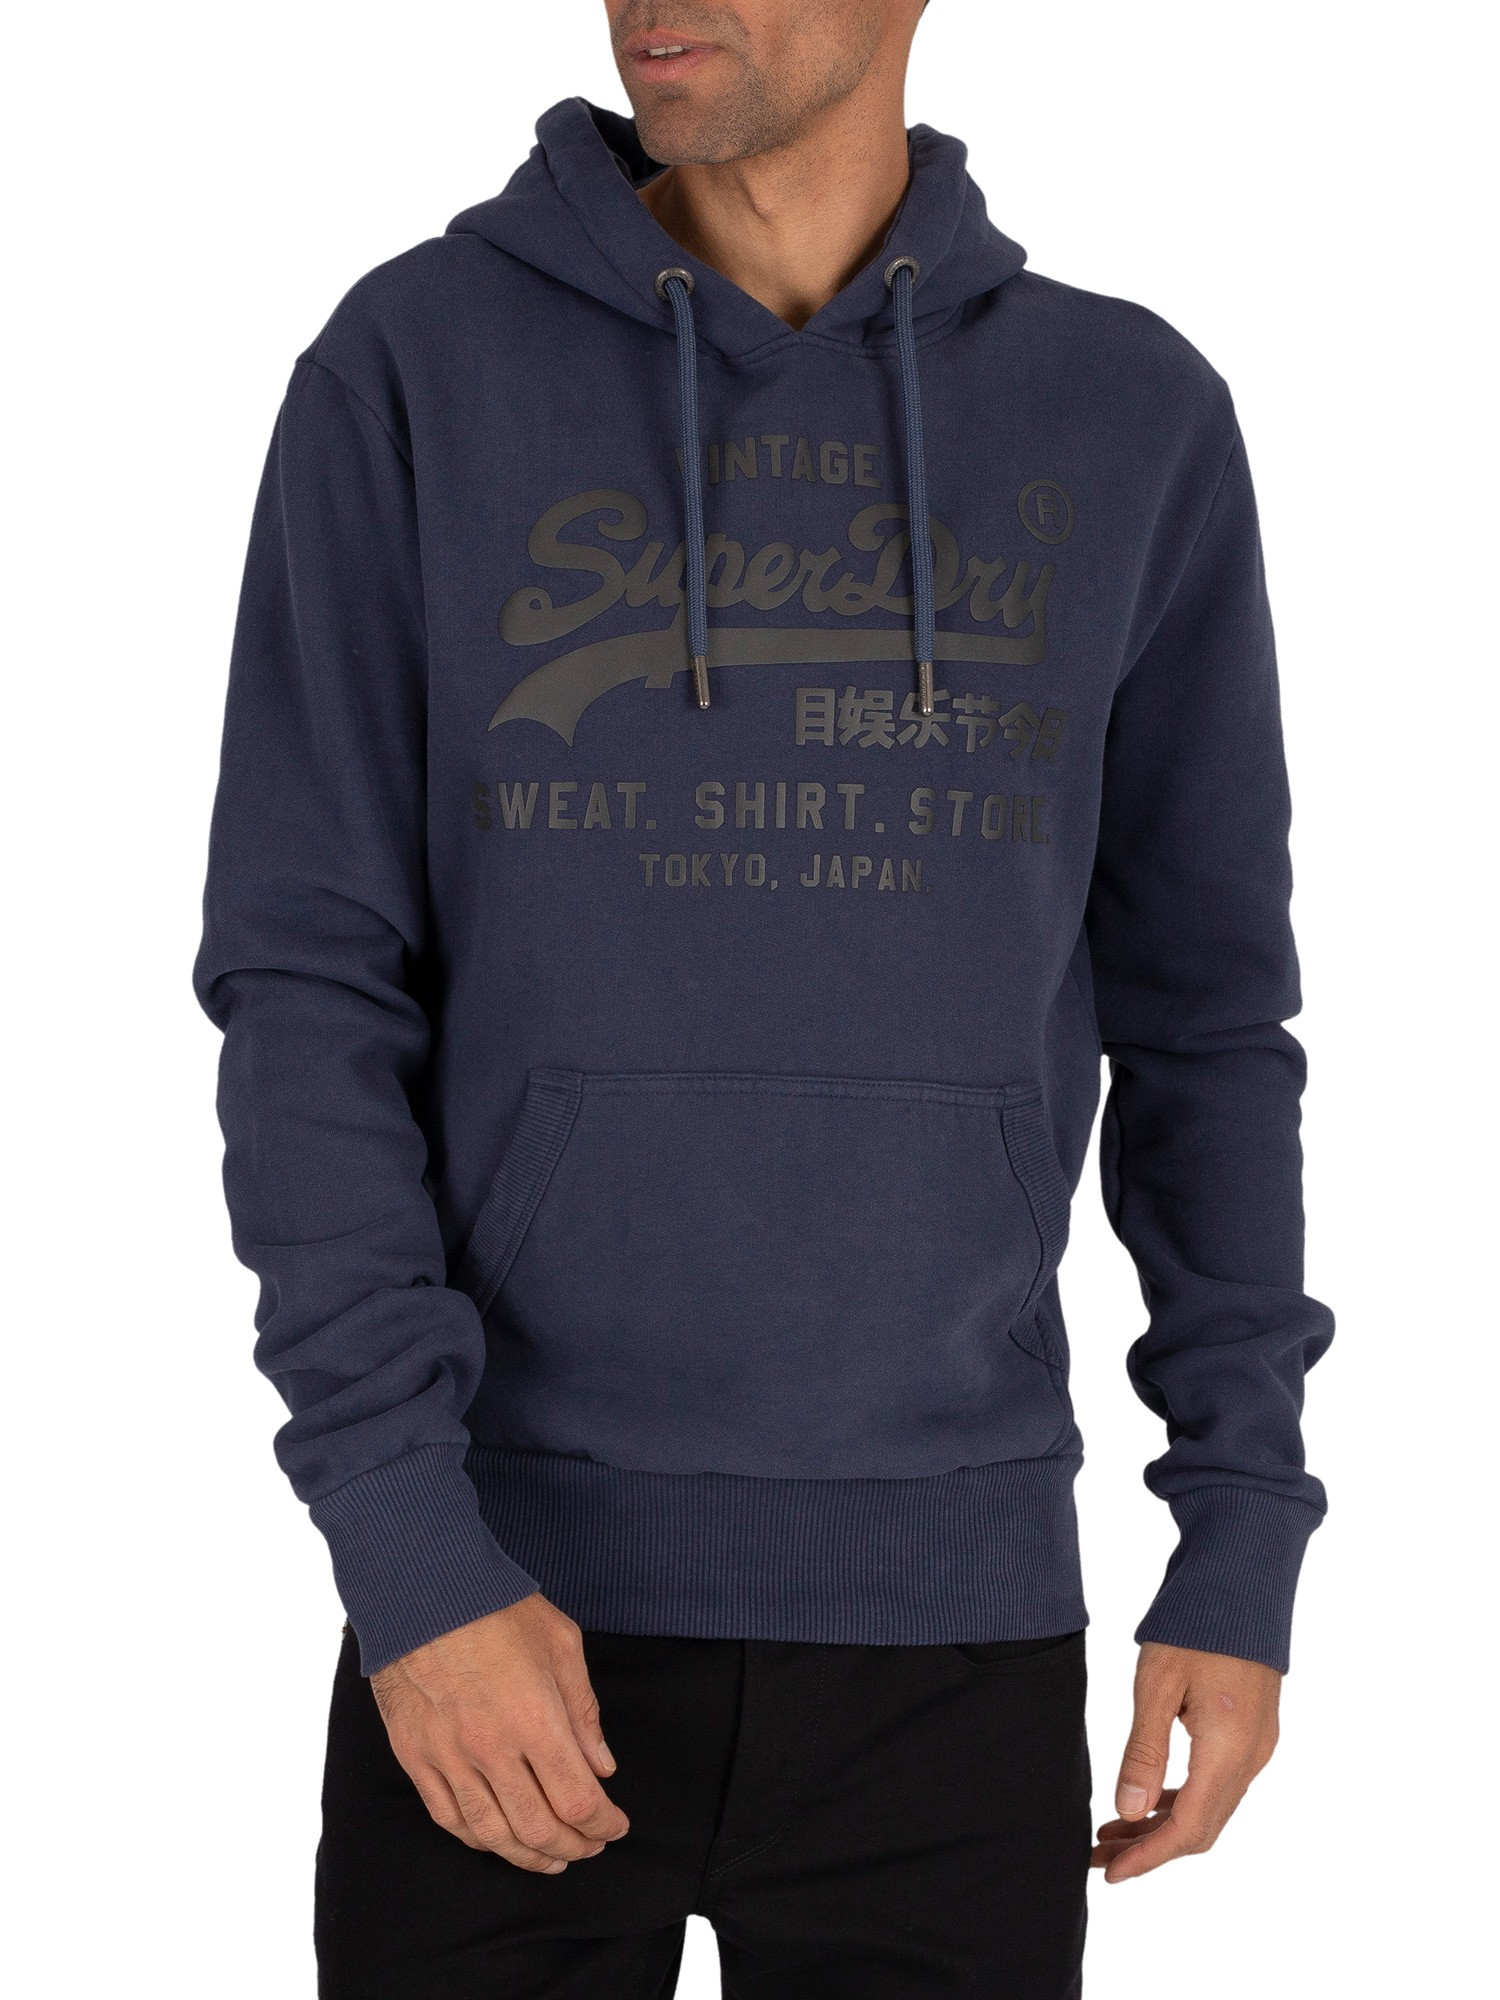 Superdry Shirt Shop Bonded Pullover Hoodie - Lauren Navy